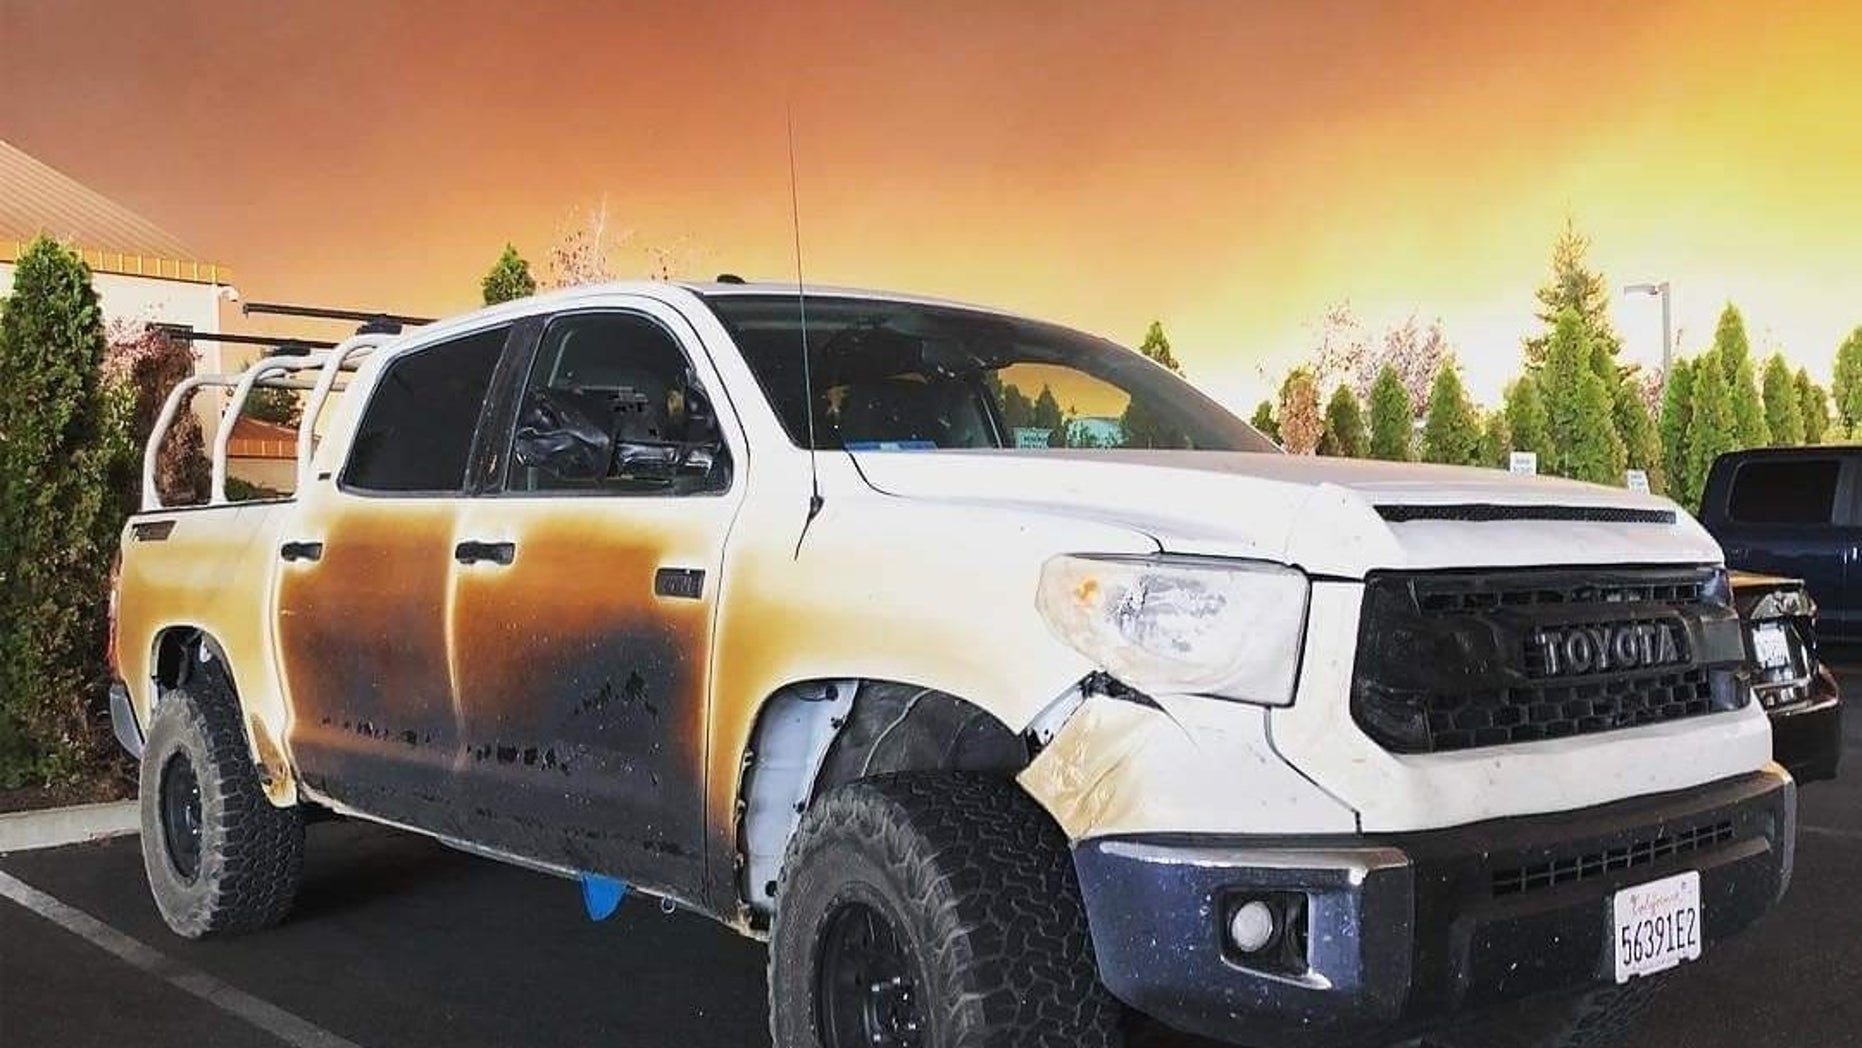 A California nurse credited his Toyota Tundra to saving his life.